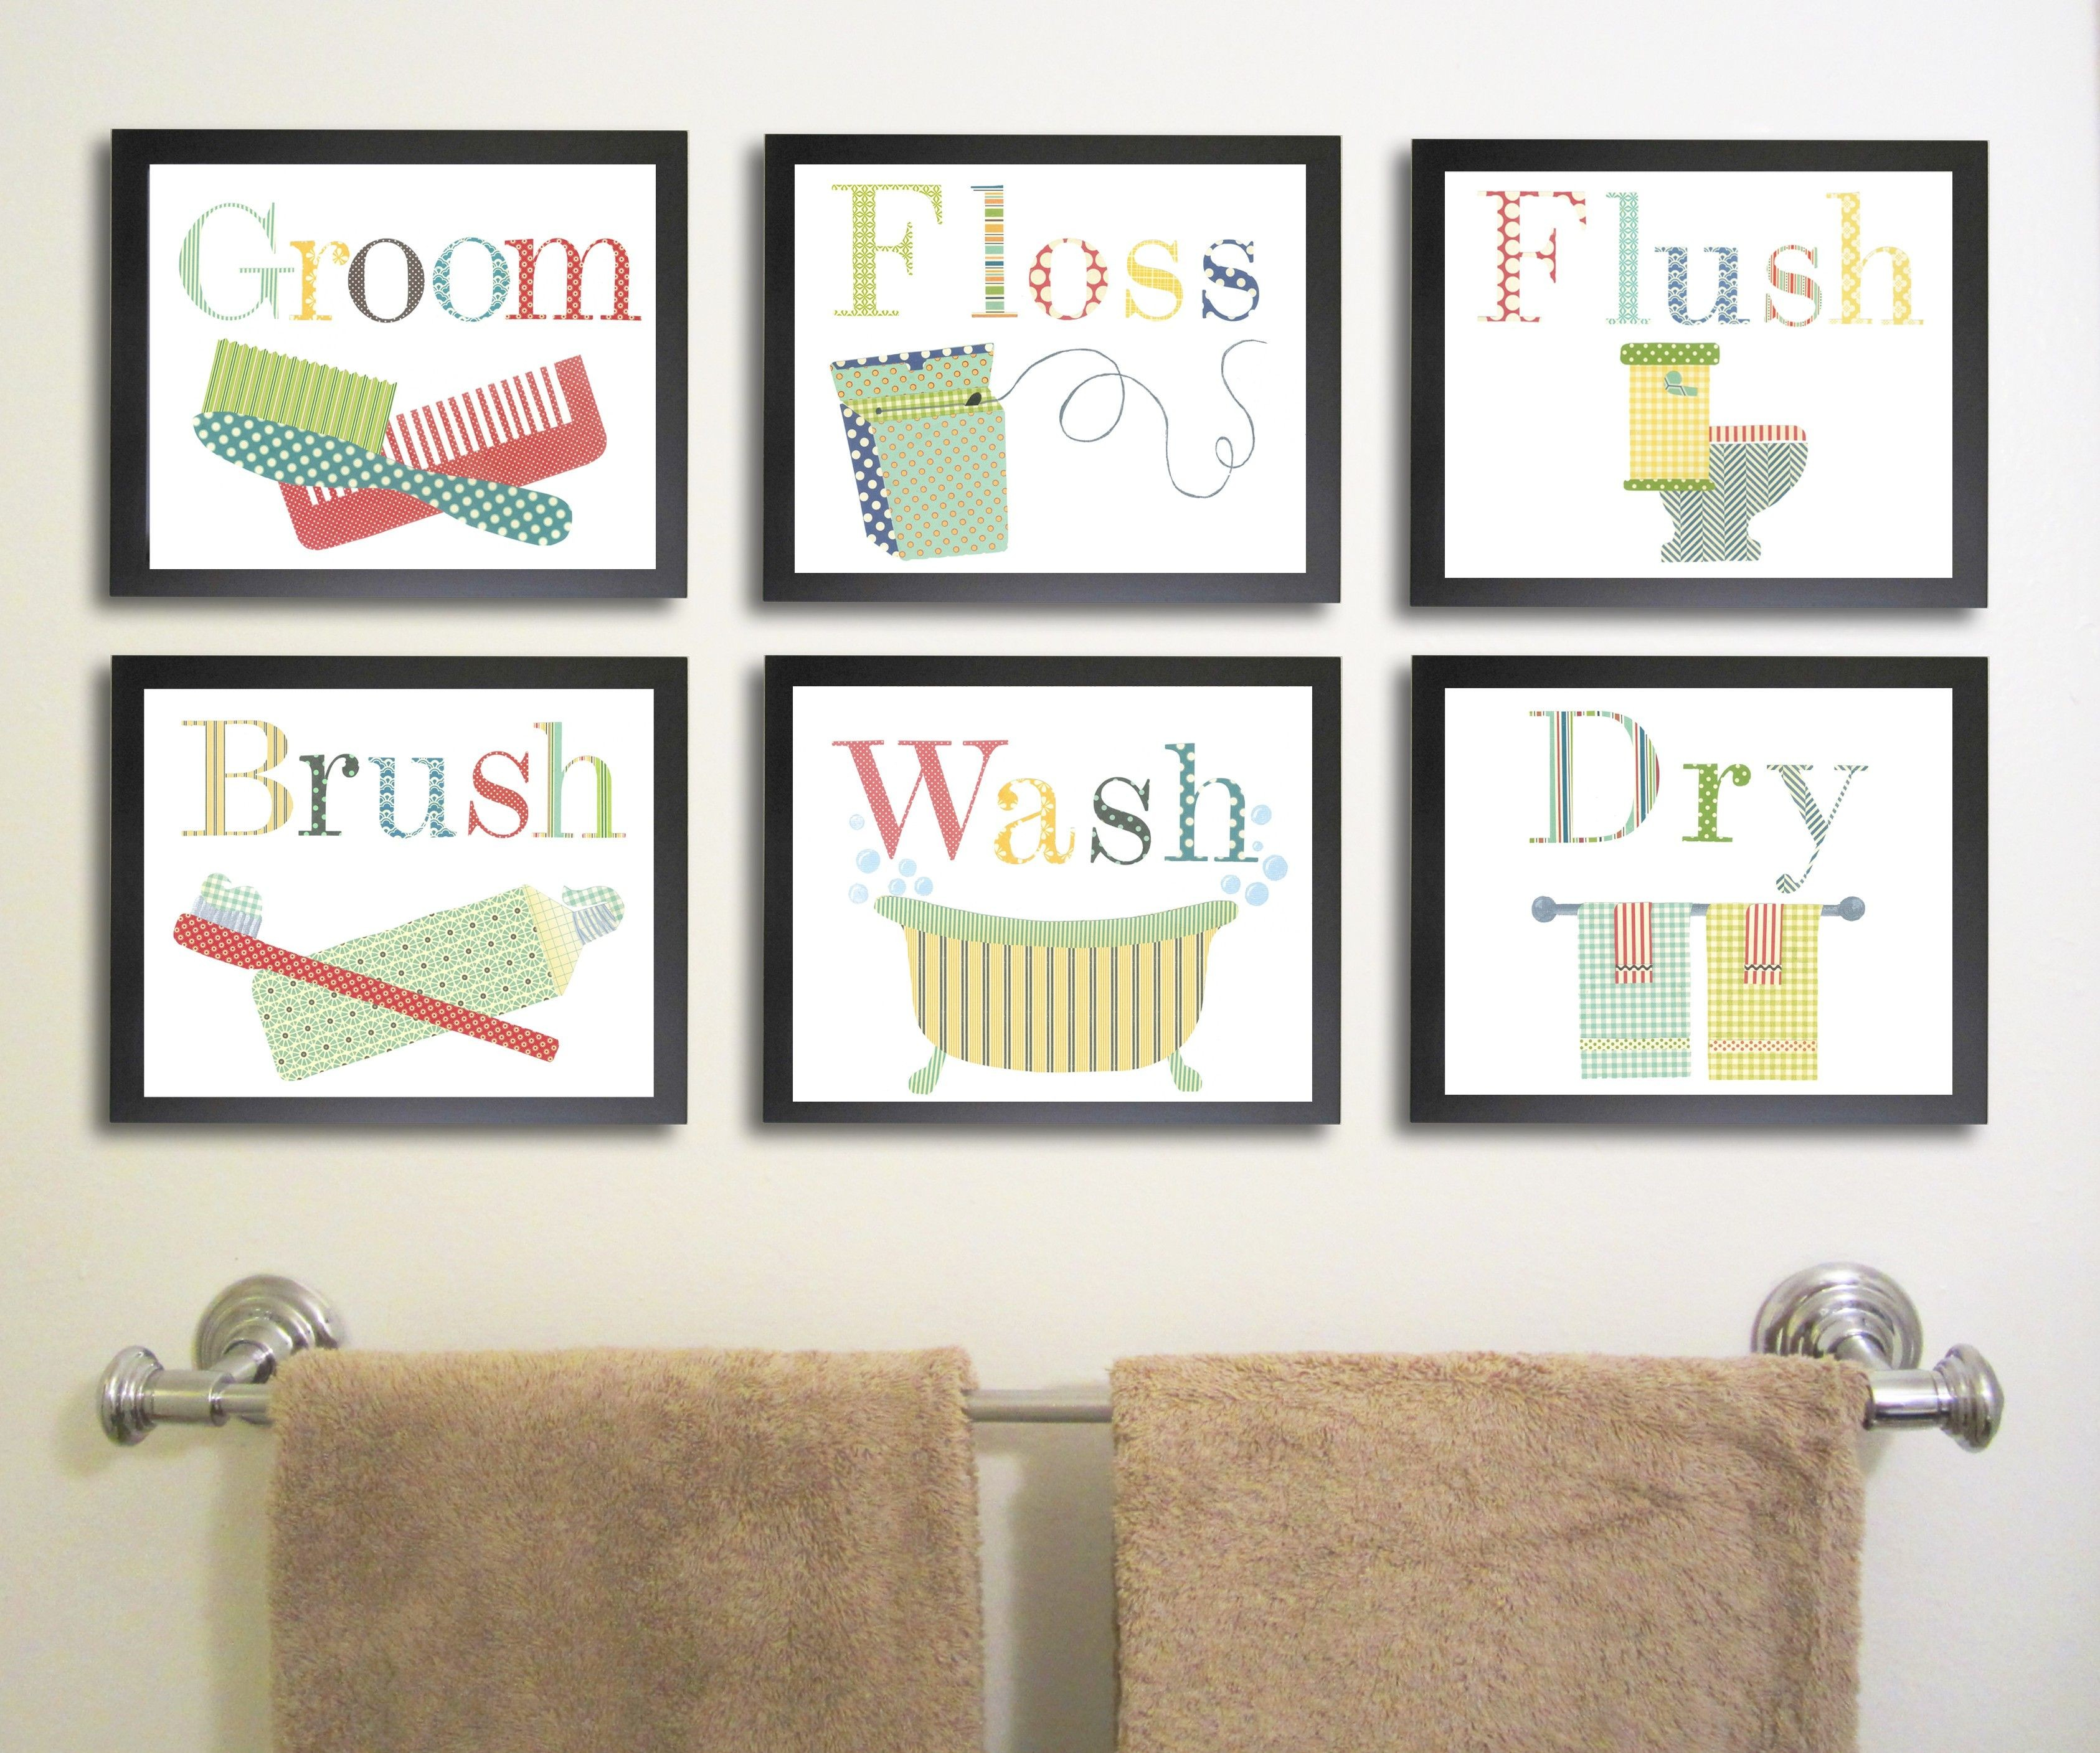 Bathroom Art Ideas Beautiful Bathroom Art Ideas for Walls Walls Ideas Ideas